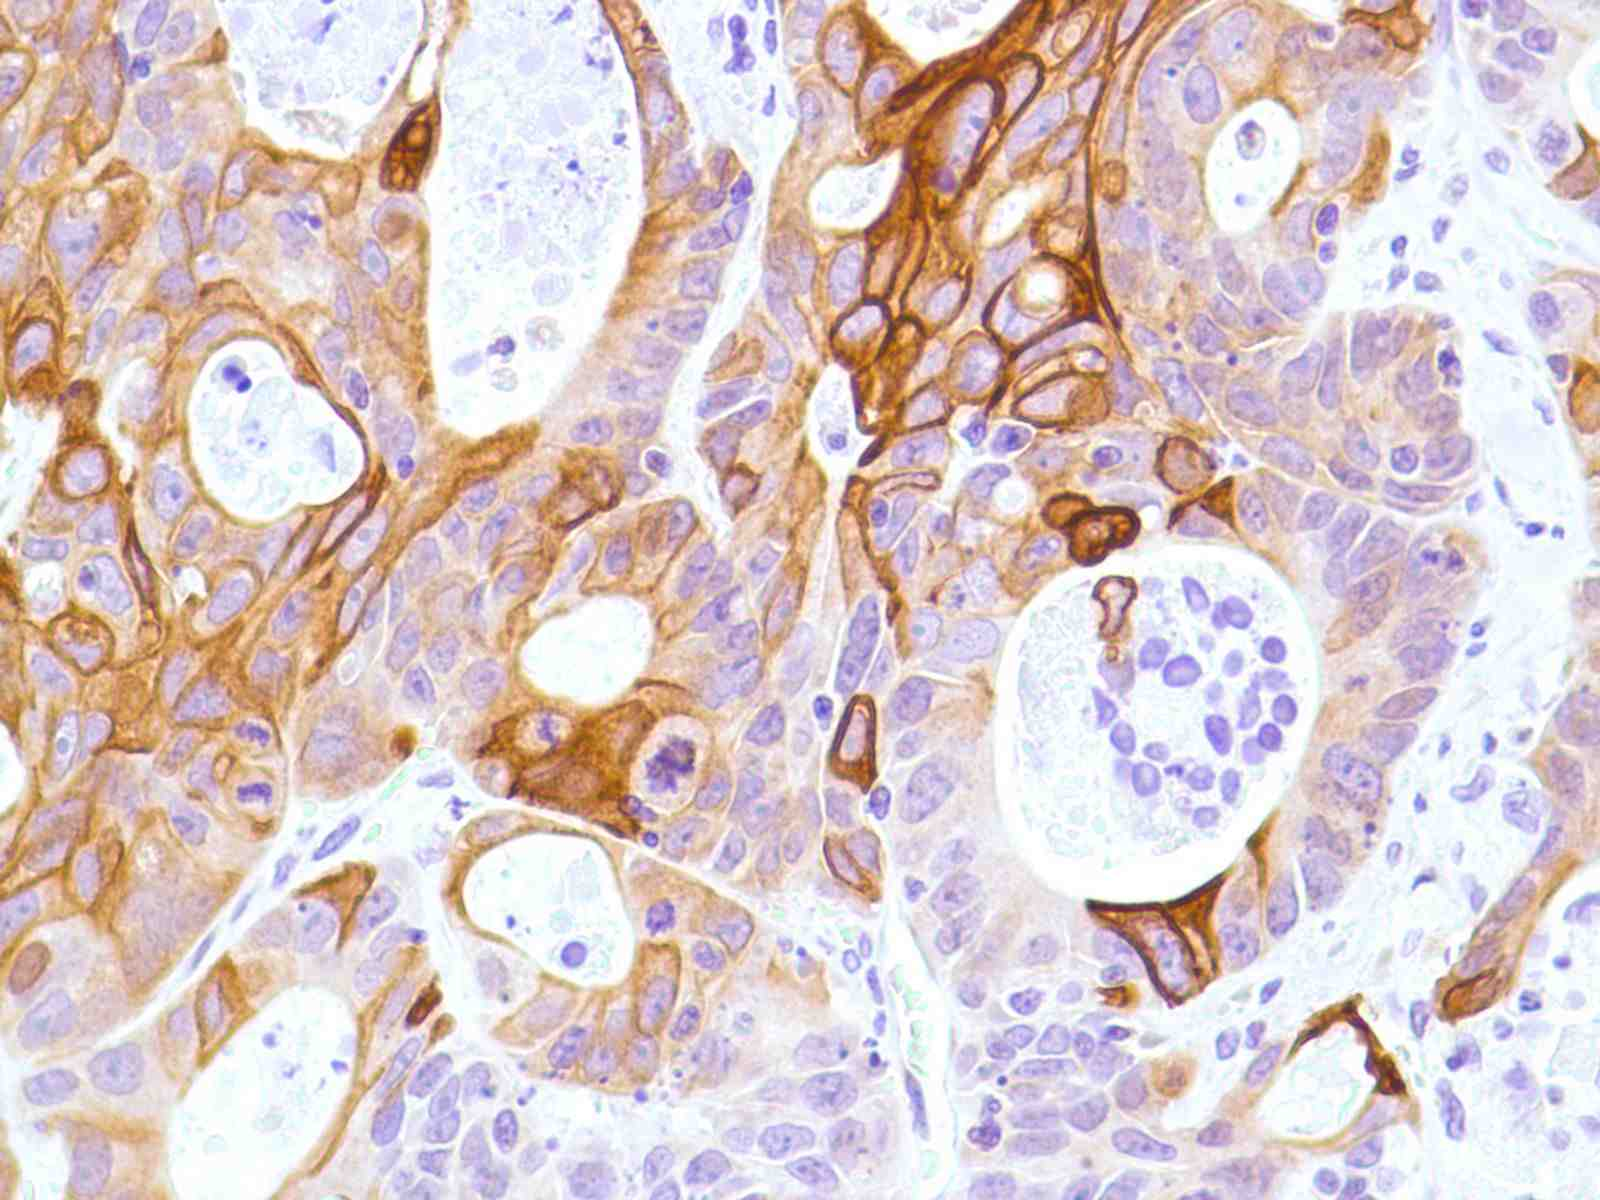 Human Colon Adenocarcinoma stained with anti-Keratin 6 antibody